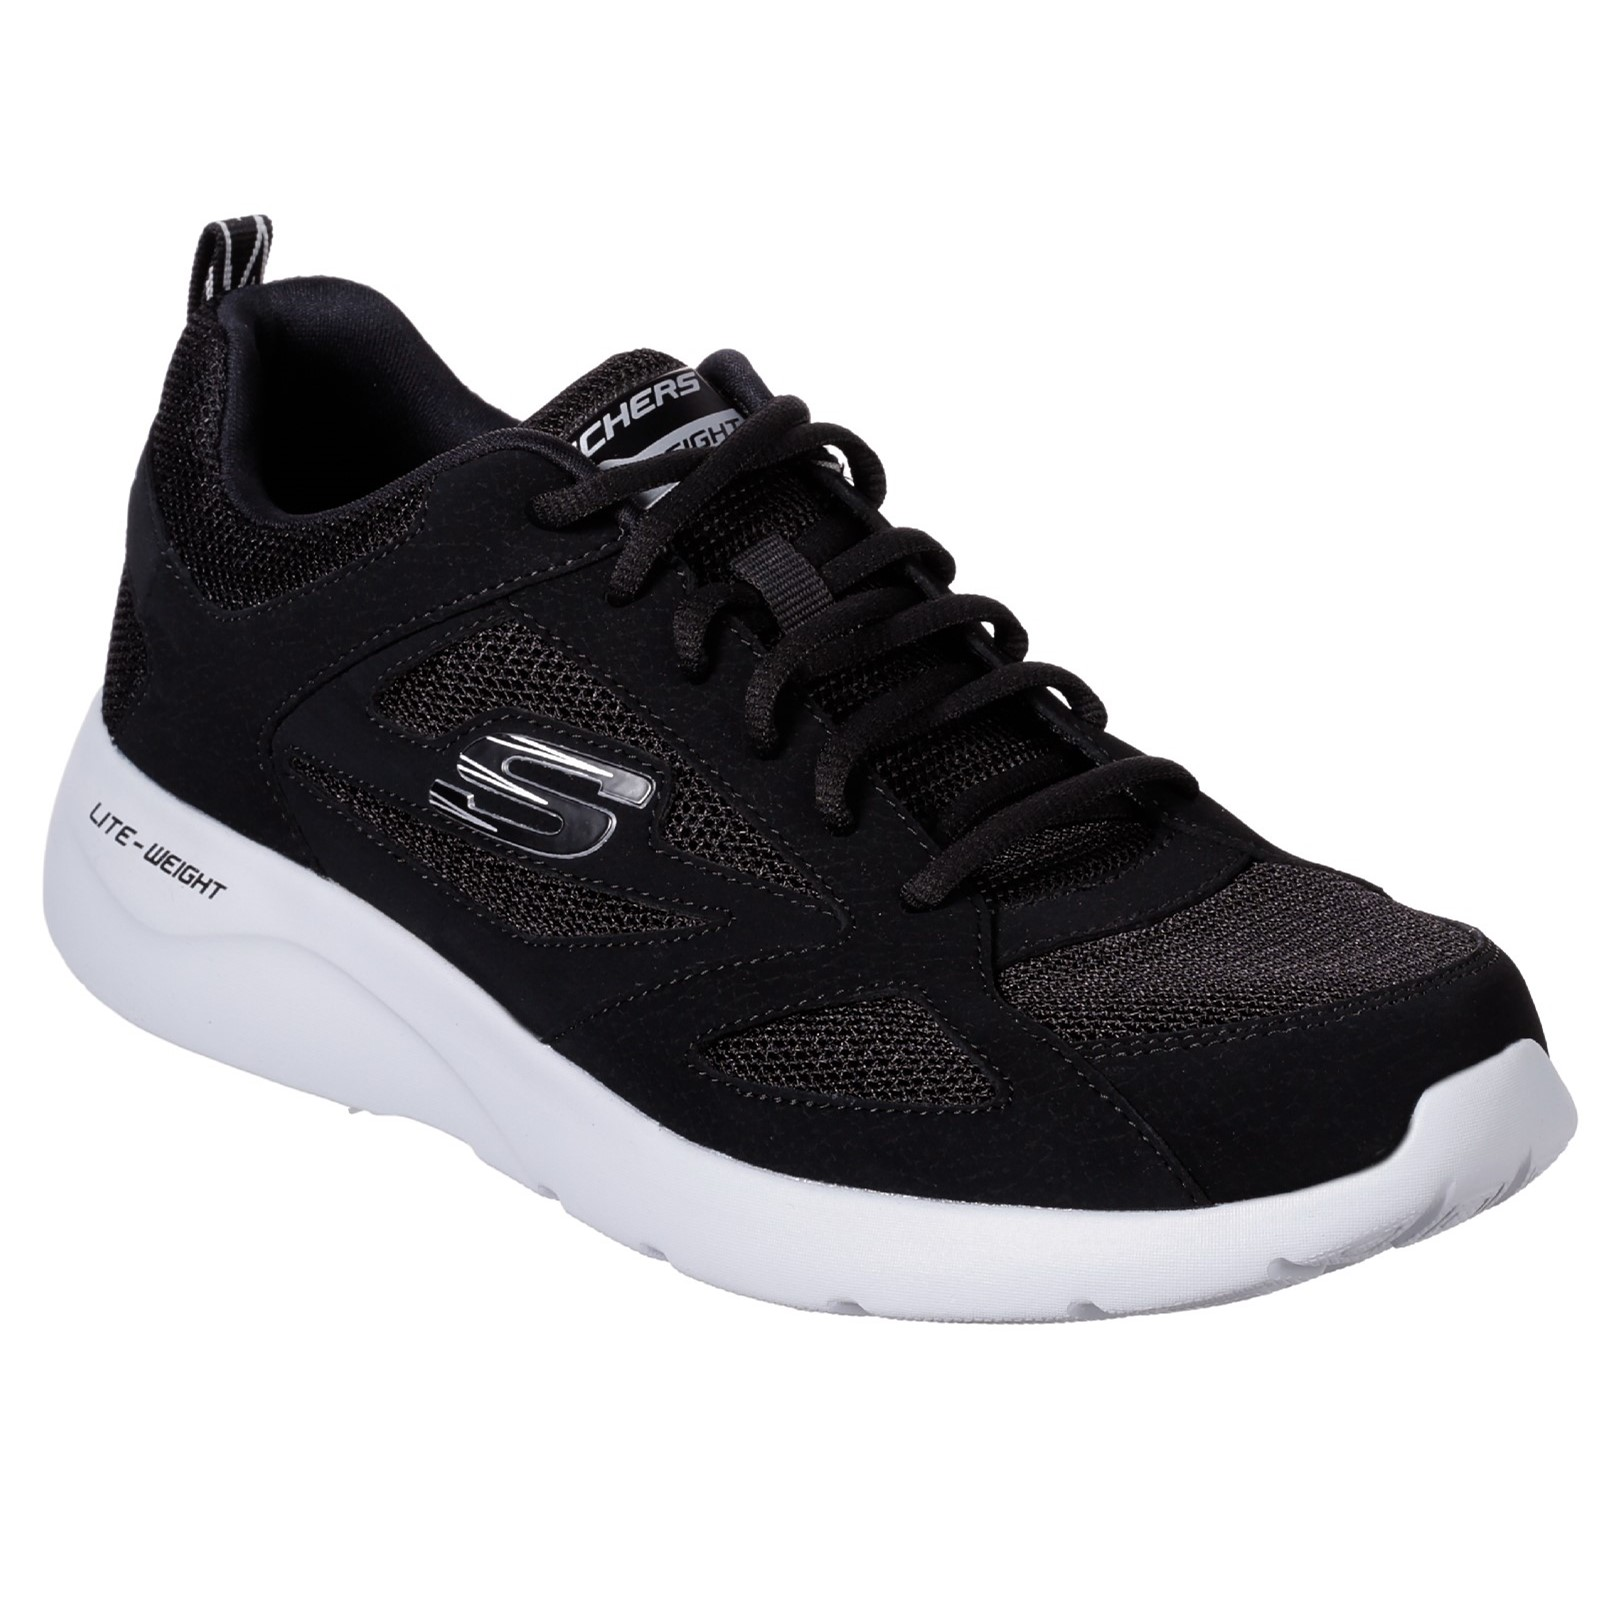 Skechers Mens Dynamight 2.0 Lace Up Memory Foam Trainer